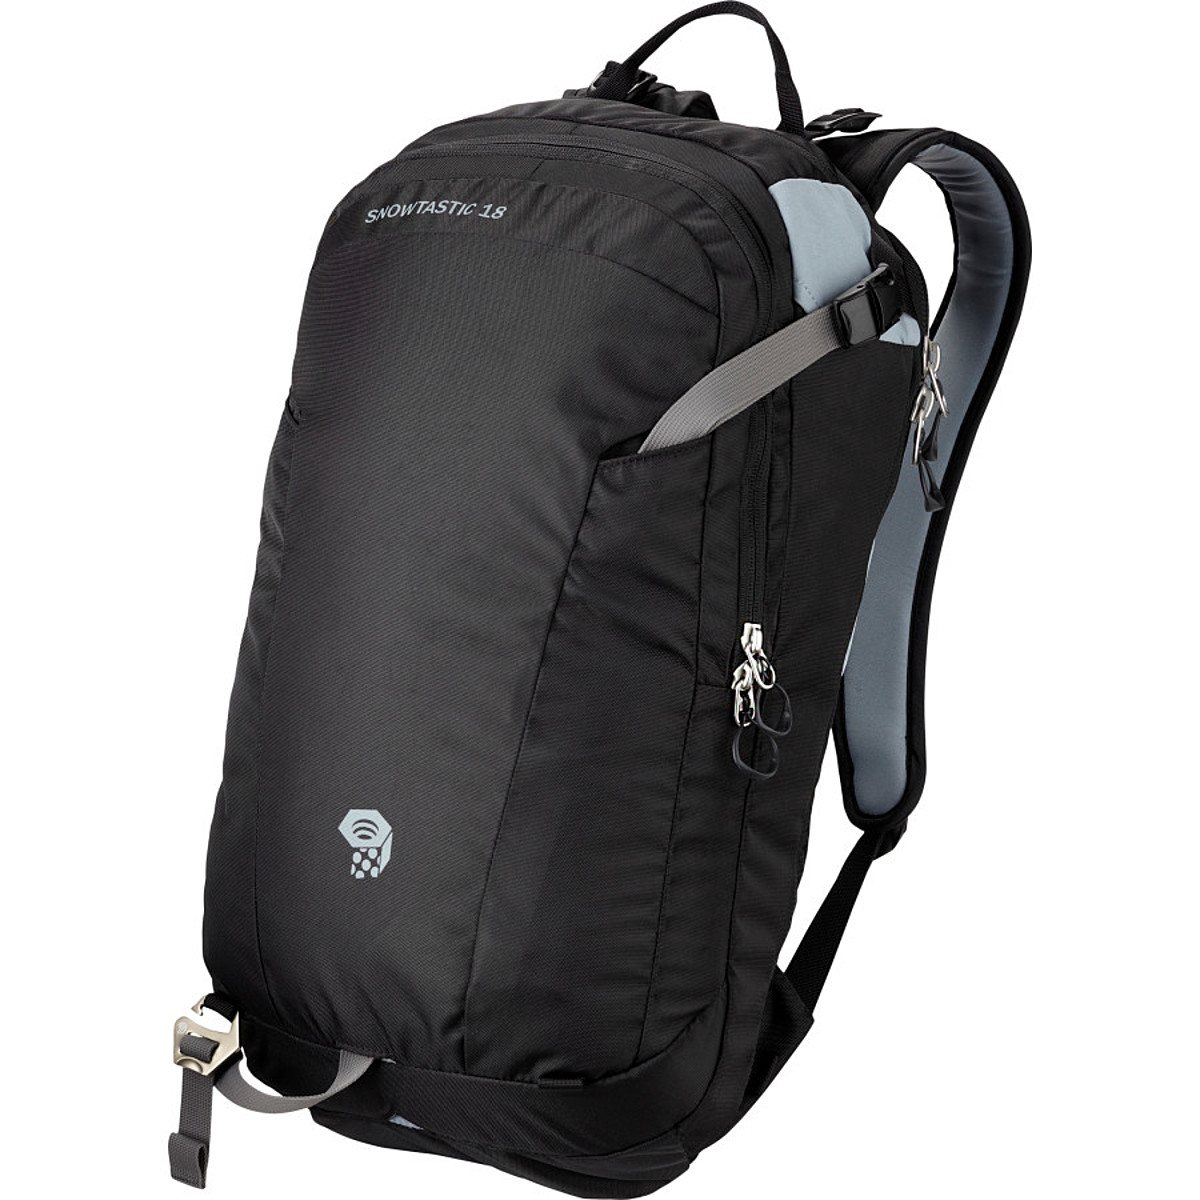 photo: Mountain Hardwear Snowtastic 18 winter pack